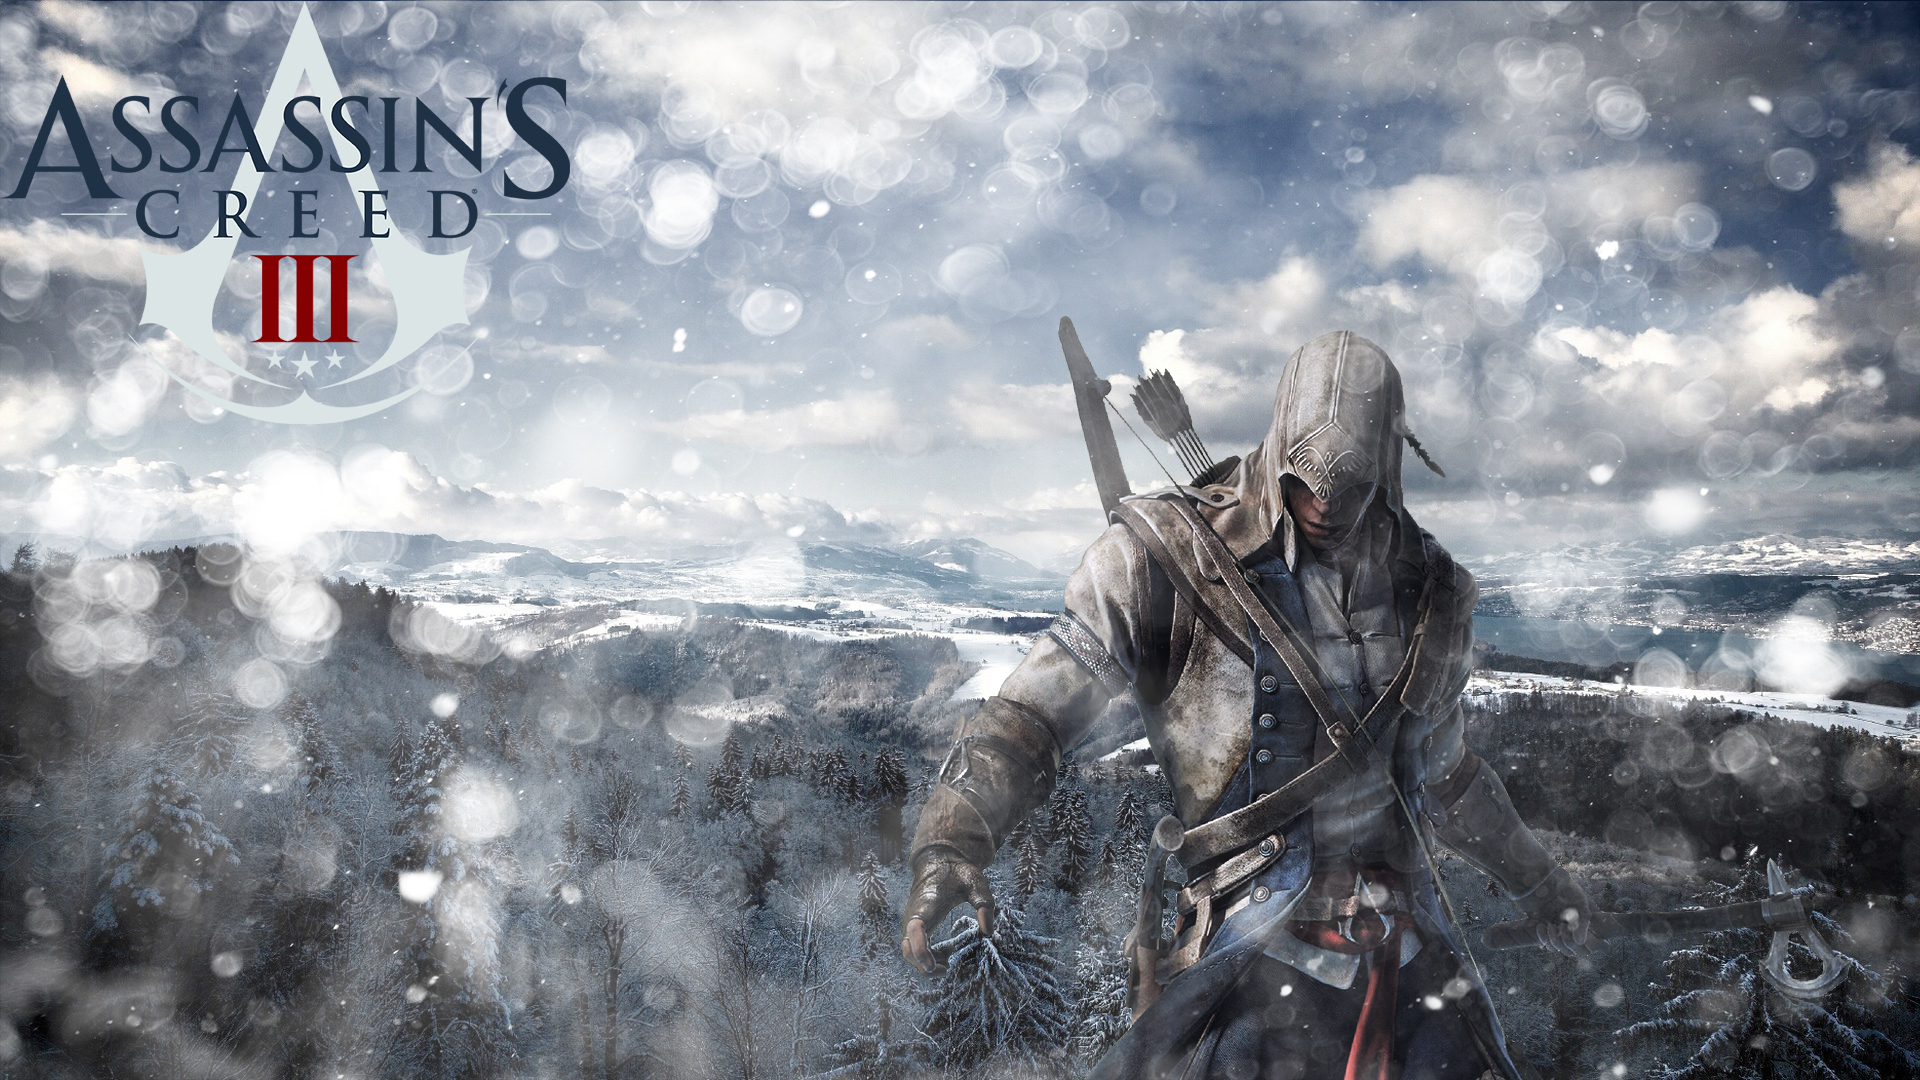 Photos Assassin S Creed Assassin S Creed 3 Games 1920x1080